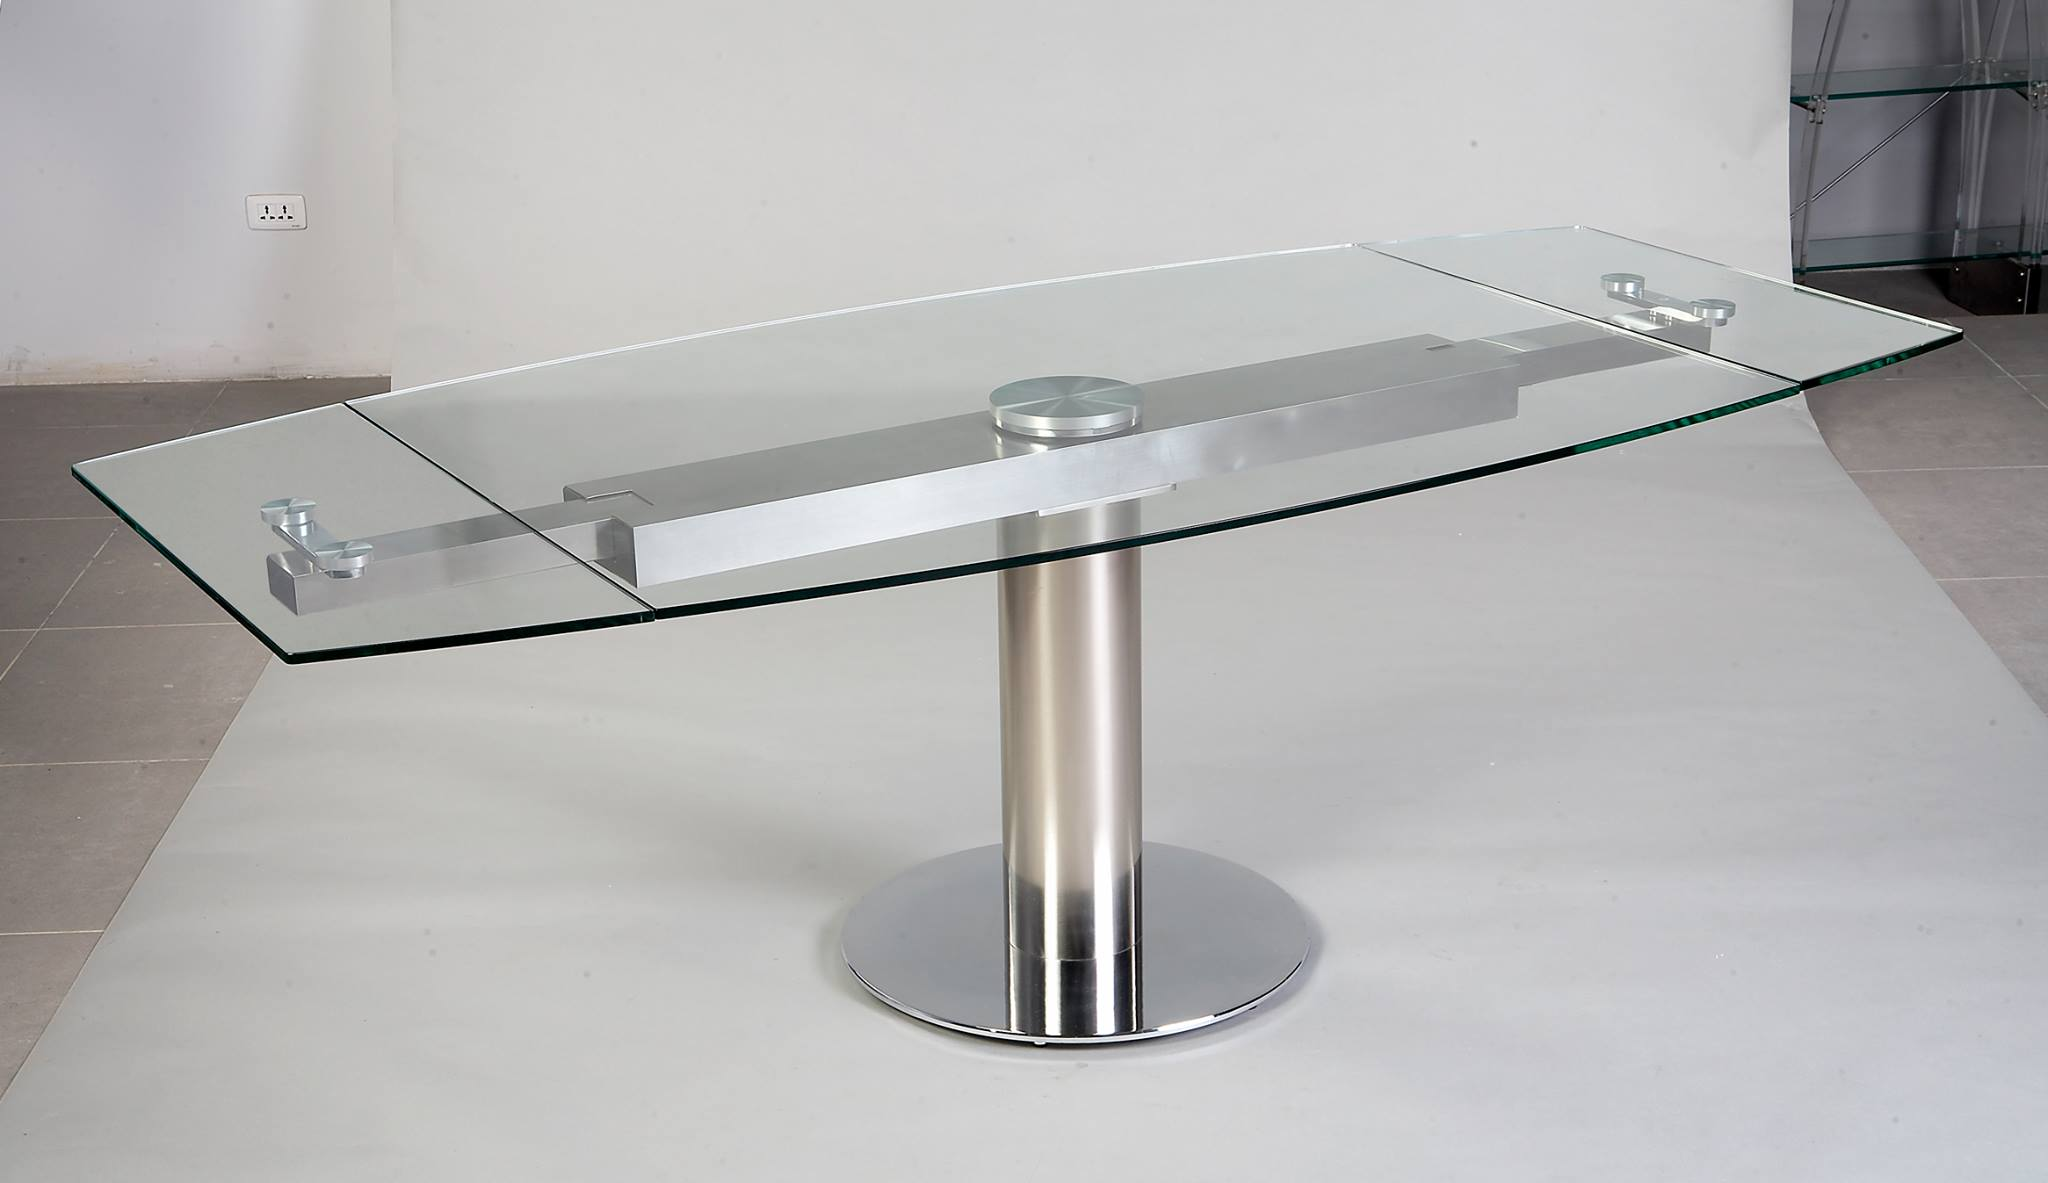 Table verre avec pied central for Table de cuisine ovale